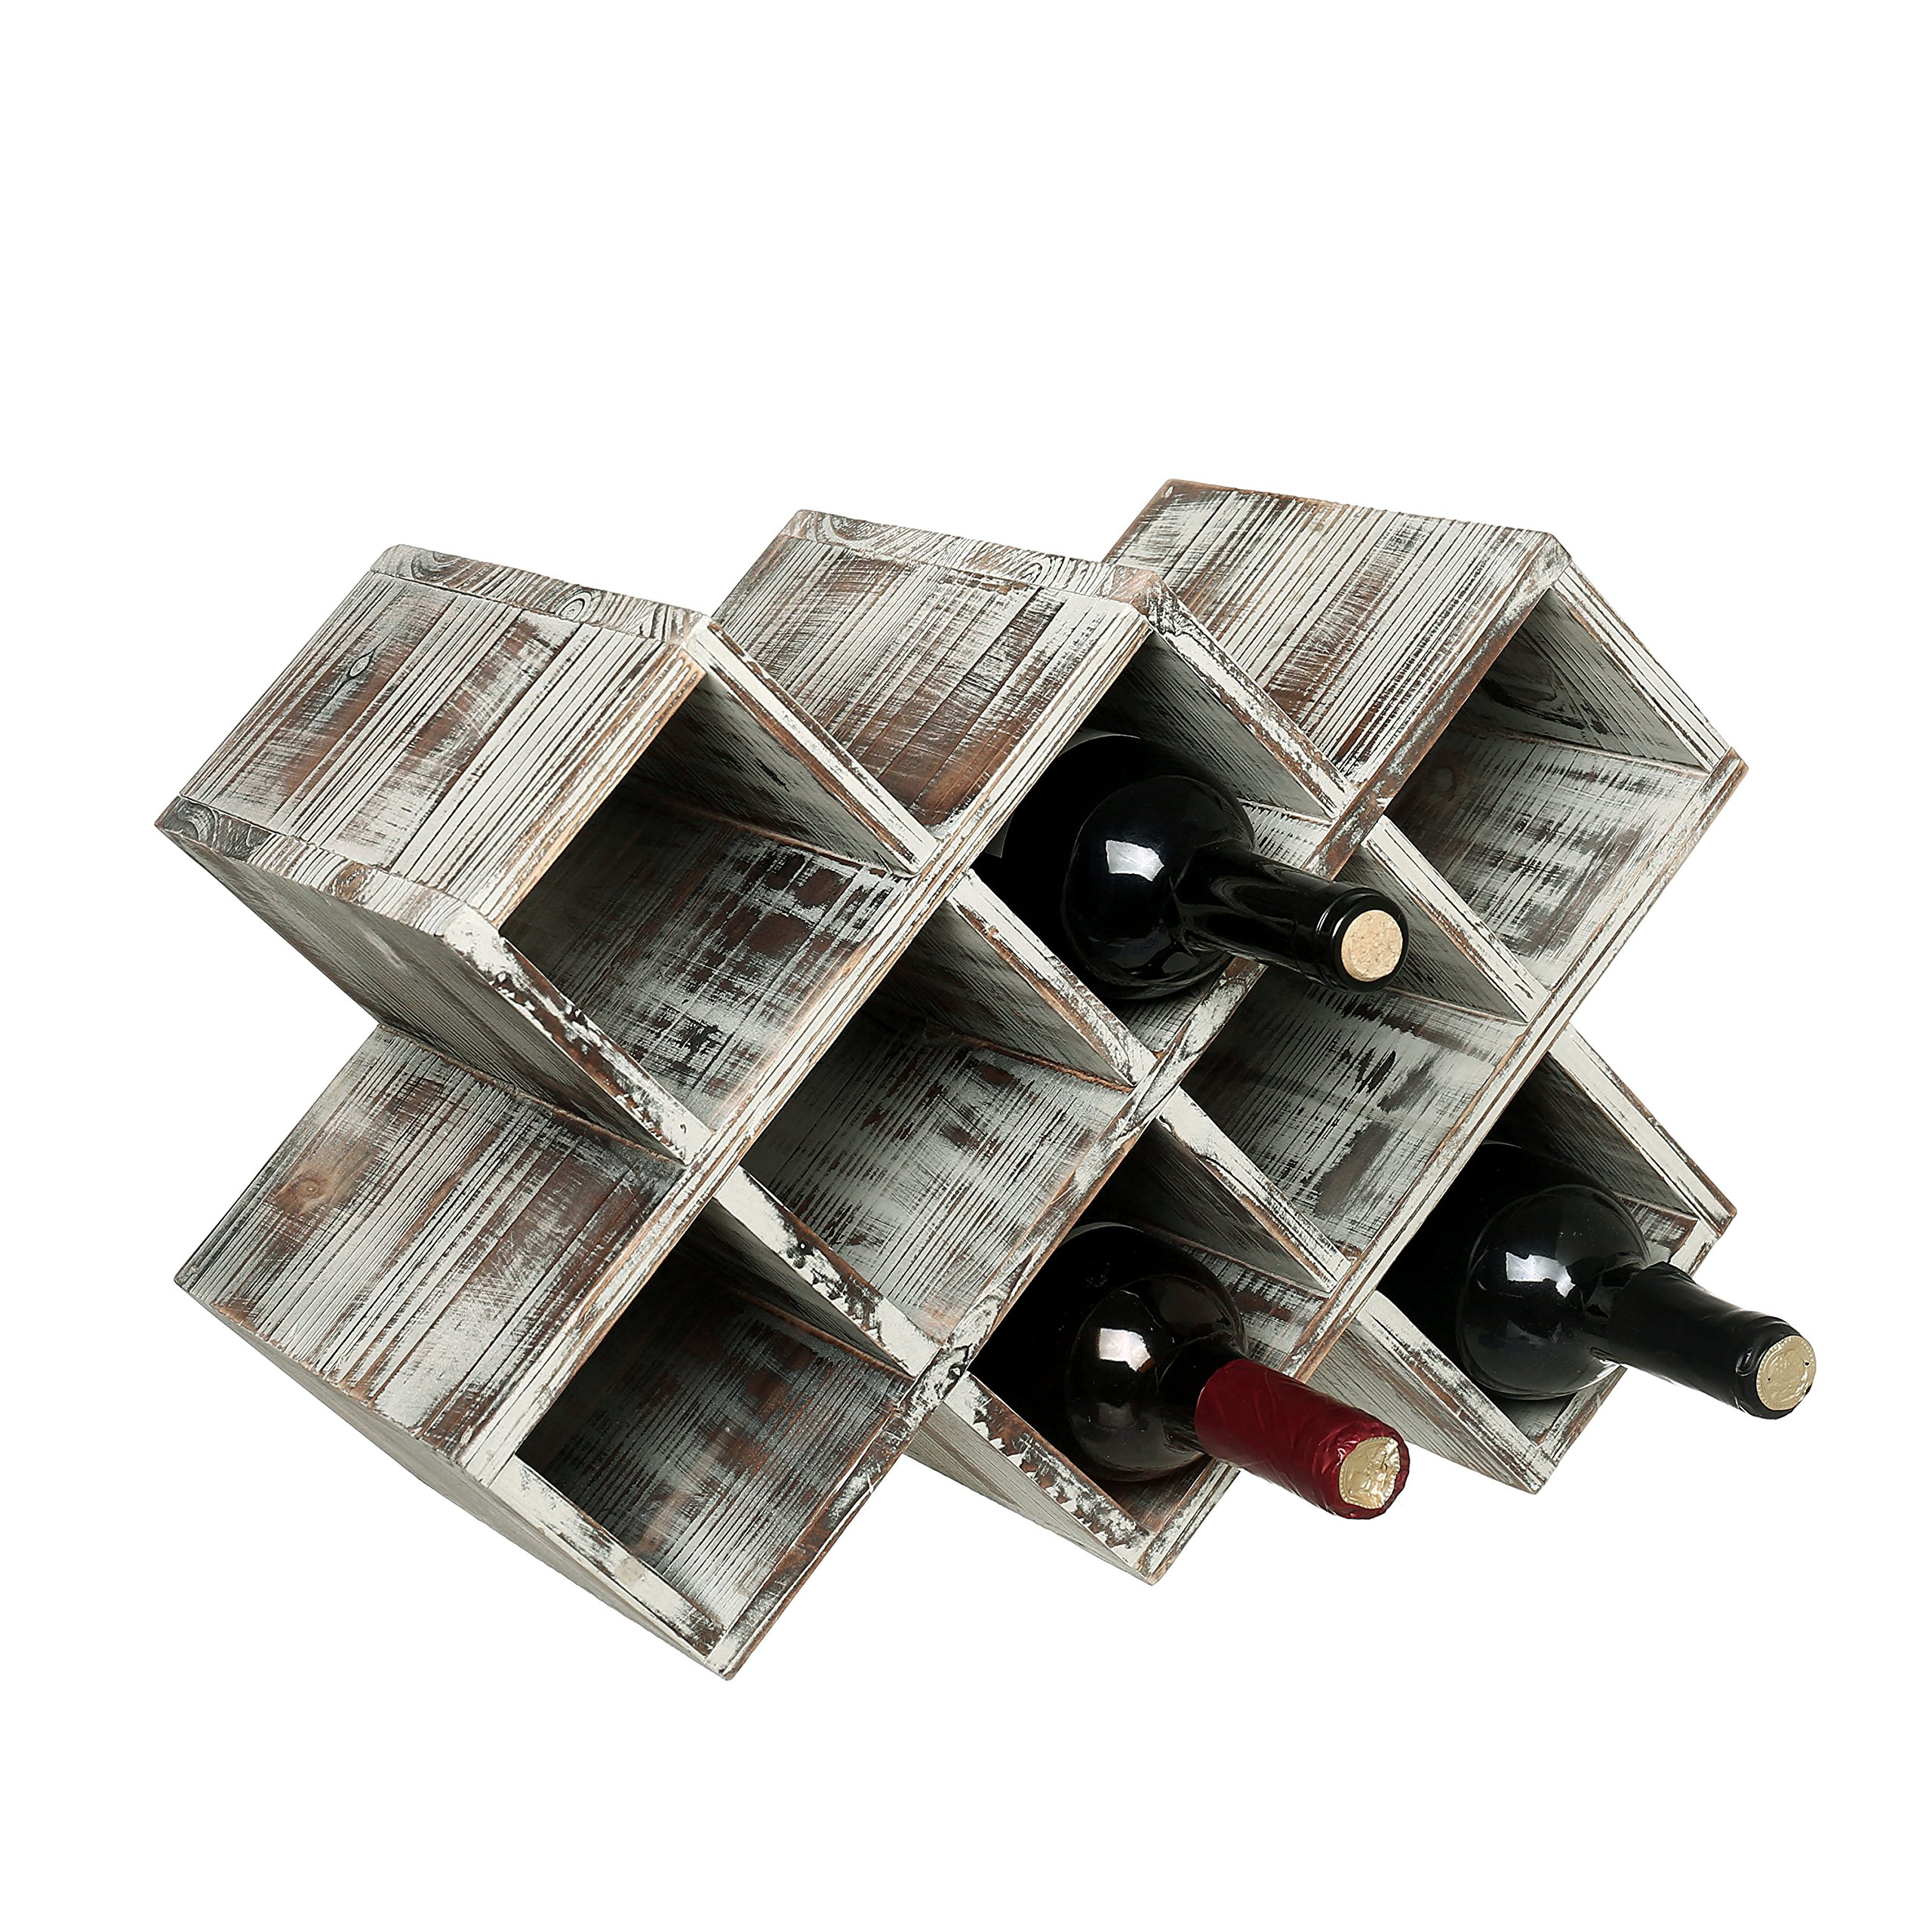 Countertop Rustic Torched Wood Wine Rack, Geometric Design 8-Bottle Storage Organizer